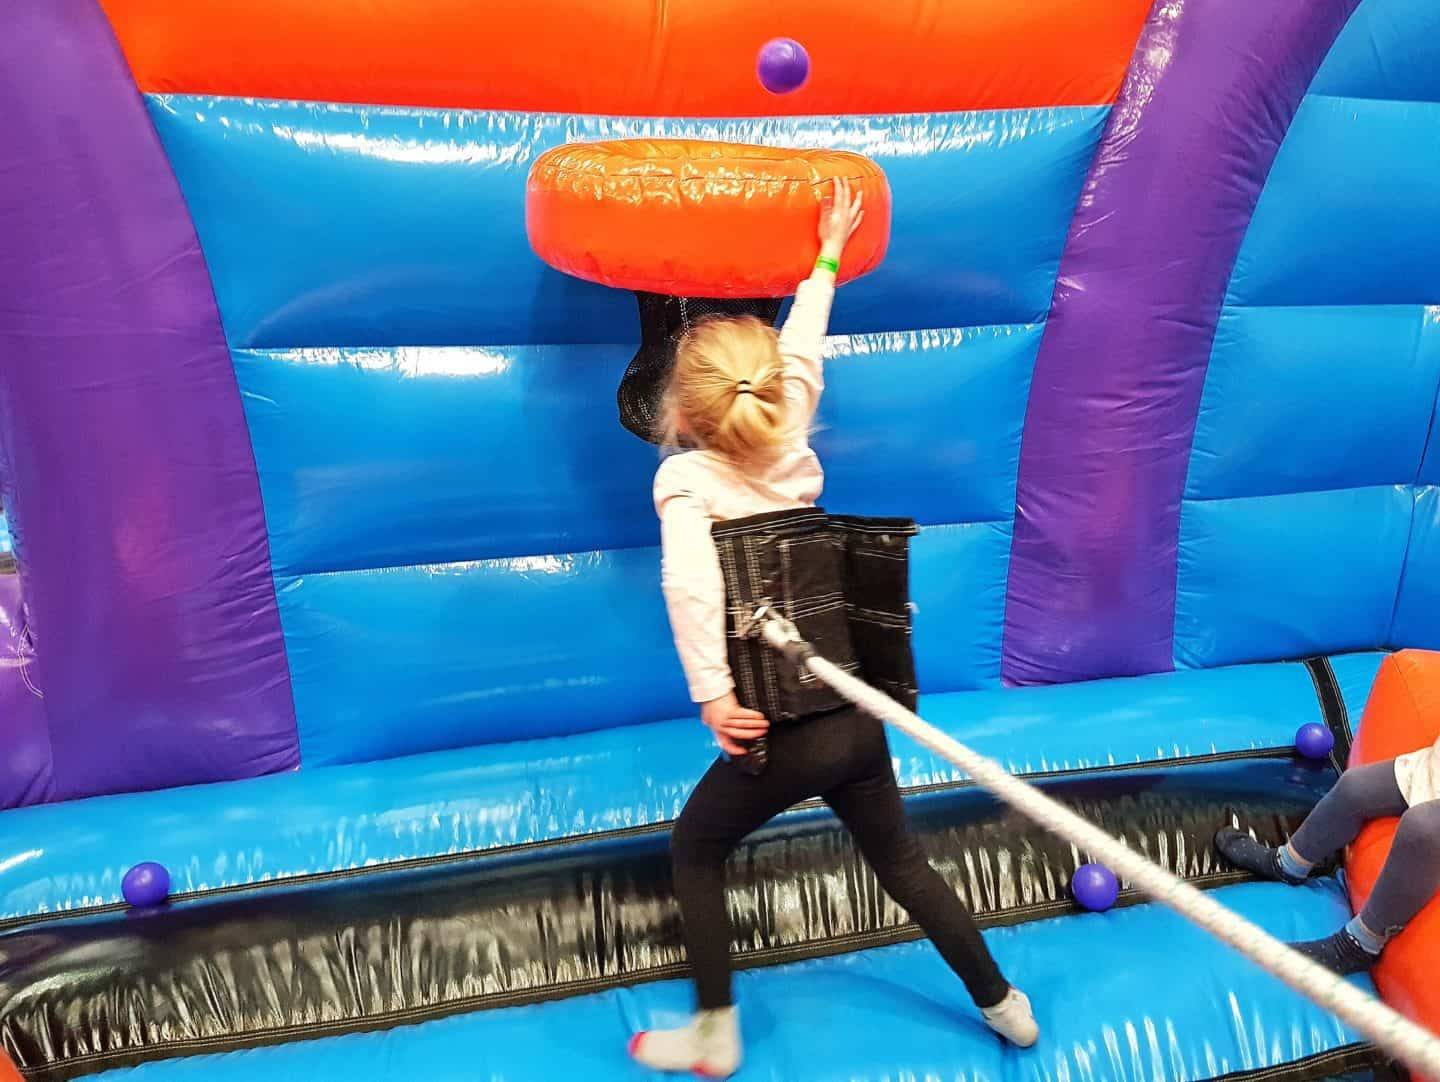 Inflata Nation Birmingham girl on bungee game scoring basket